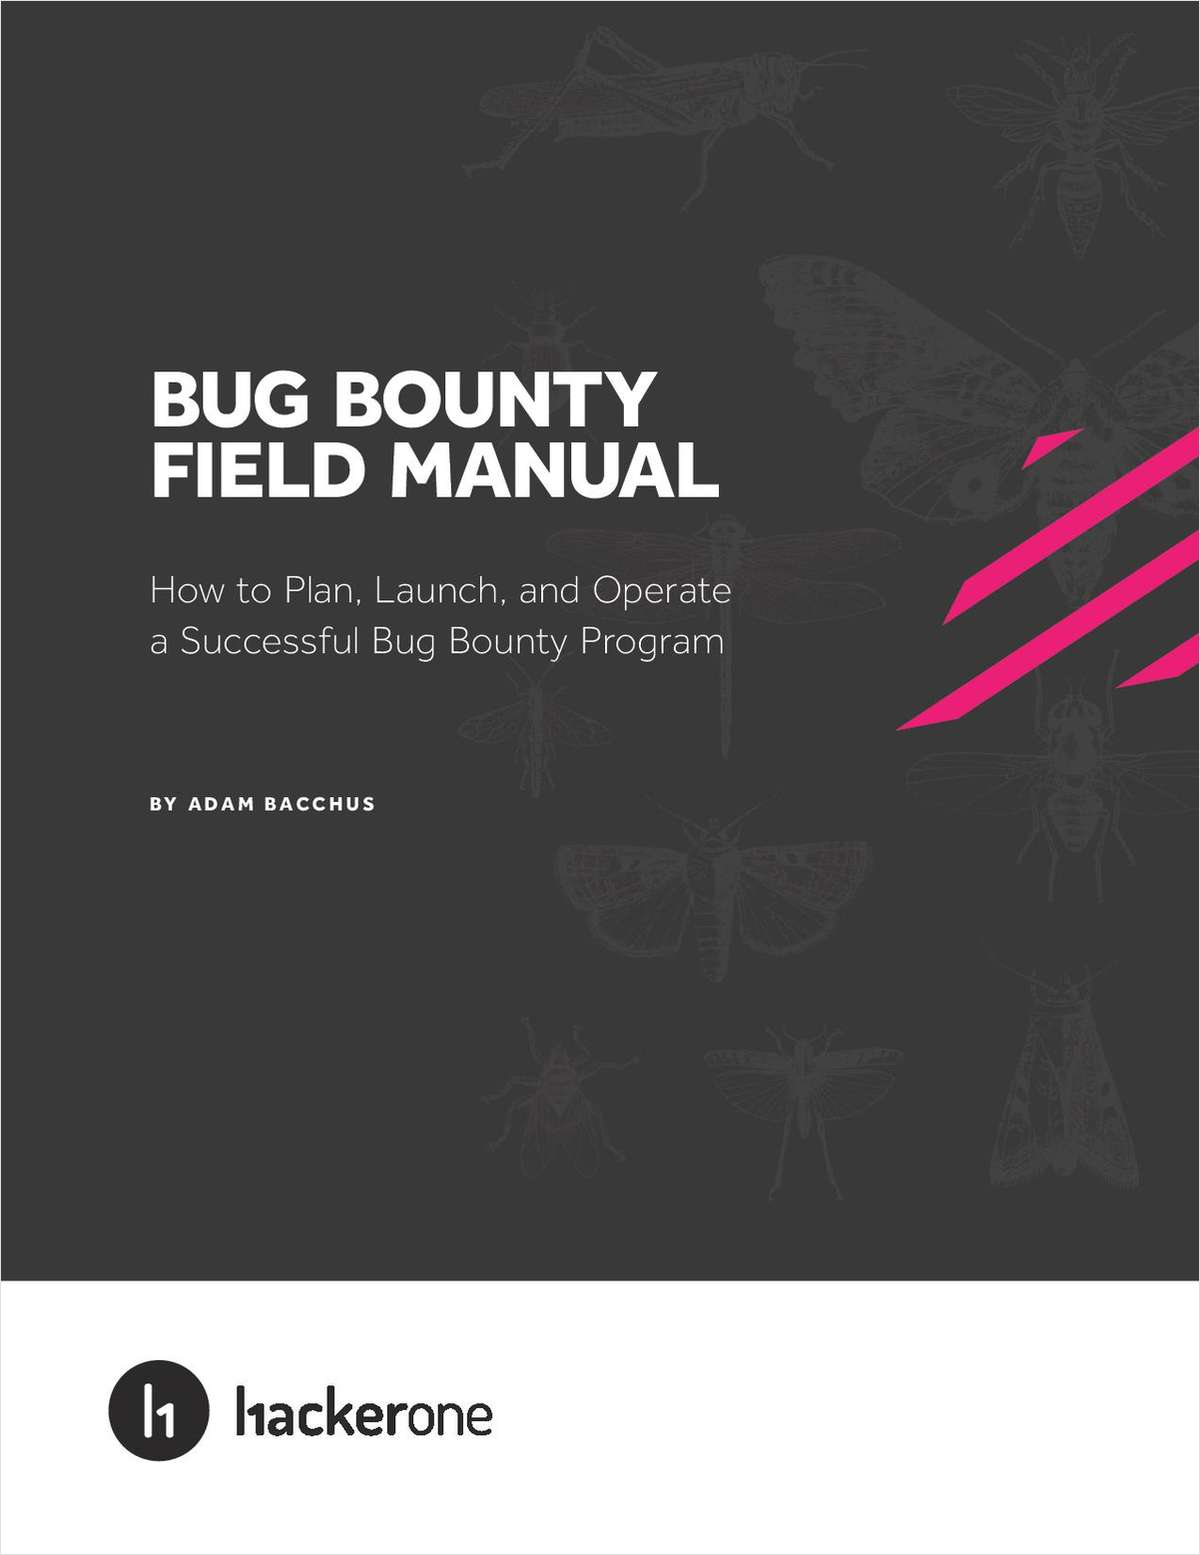 Bug Bounty Field Manual - How to Plan, Launch, and Operate a Successful Bug Bounty Program